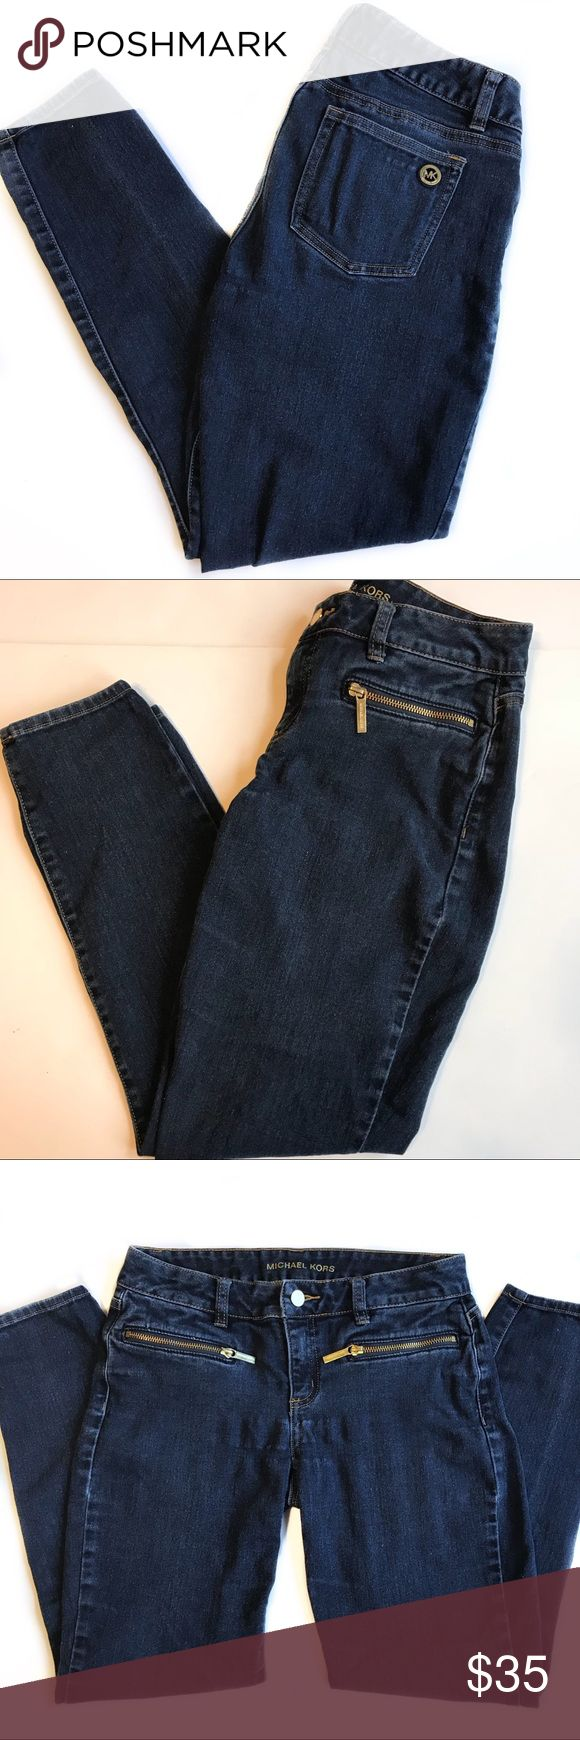 """MICHAEL KORS INDIGO BASICS DENIM SKINNY JEANS Authentic MICHAEL Michael Kors Women's Skinny Stretch Denim Jeans Color: Overdyed Indigo  Size: 2 Style #: QF59A6R042 MSRP: $130  Zip fly w/ a gold-tone button closure Belt loops Stretch skinny legs 2 front pockets w/ gold-tone zipper closure 2 back pockets. Gold-tone MK logo medallion on the back right pocket 76% cotton, 23% polyester, 1% elastane. Dimensions taken while laying flat. Waist, Hips & Leg Opening are doubled.Waist 28"""" Hips 34""""…"""